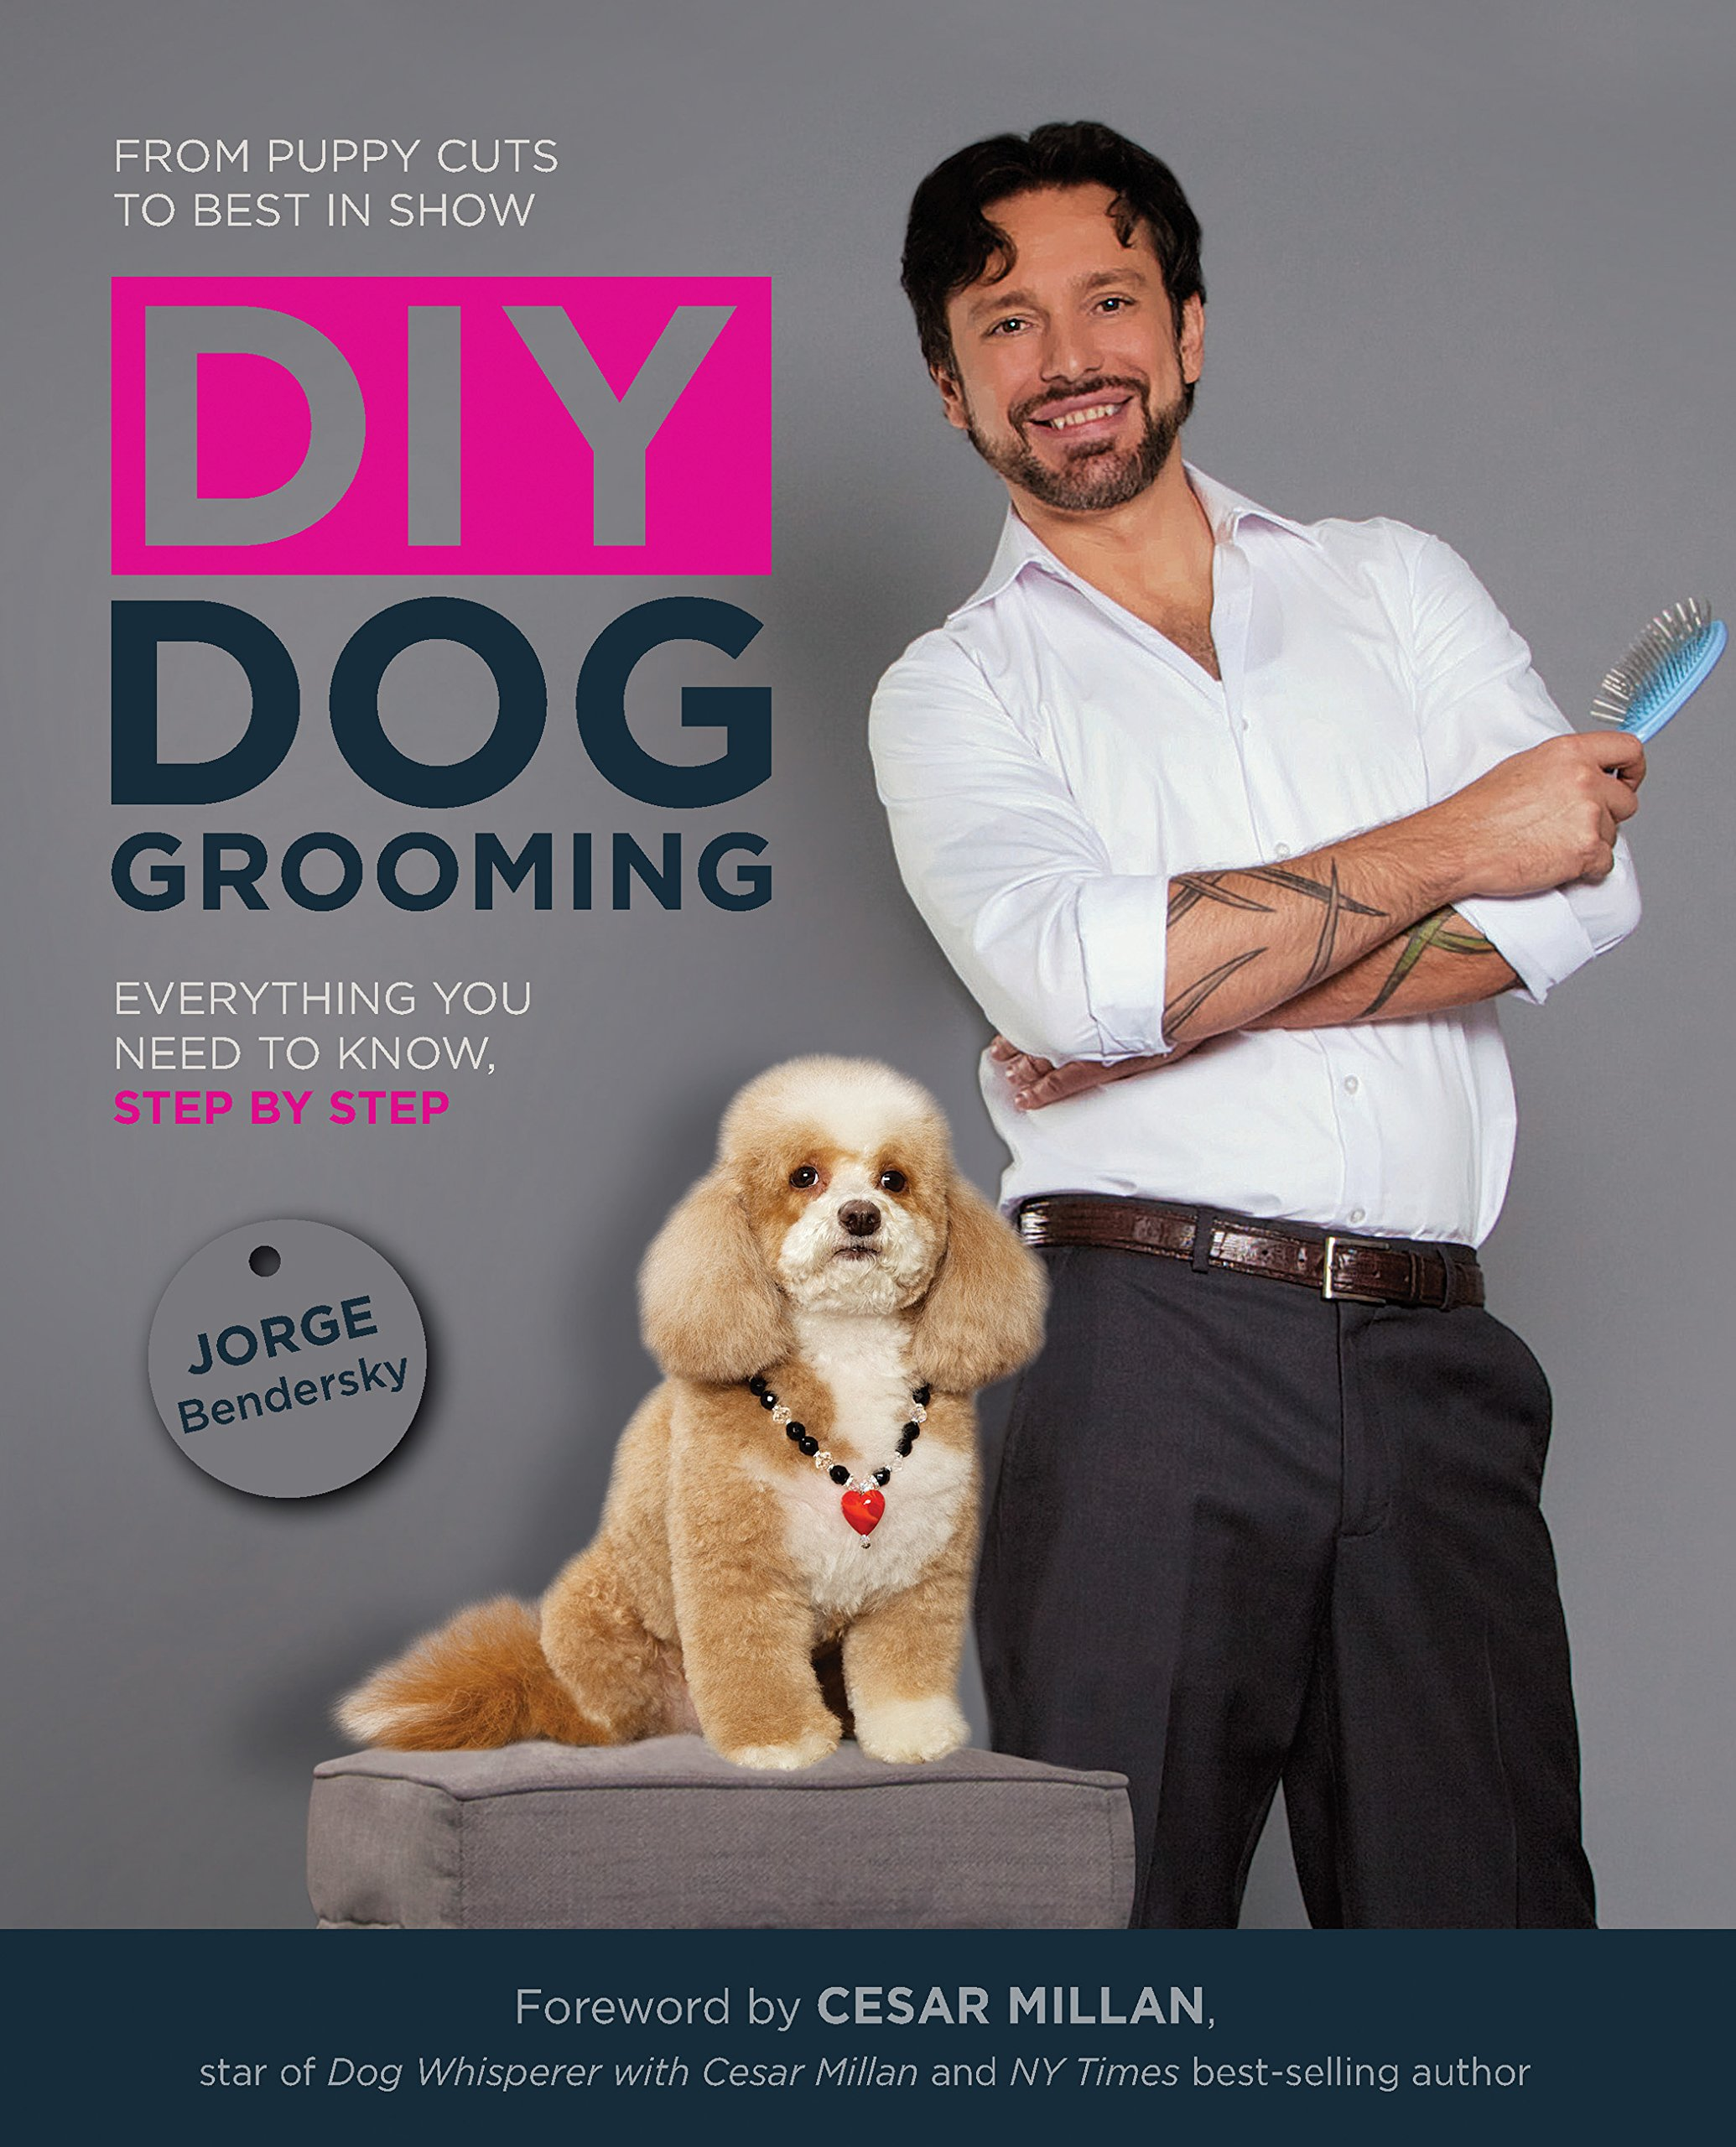 Diy dog grooming from puppy cuts to best in show everything you diy dog grooming from puppy cuts to best in show everything you need to know step by step jorge bendersky cesar milan 0080665010460 amazon books solutioingenieria Image collections